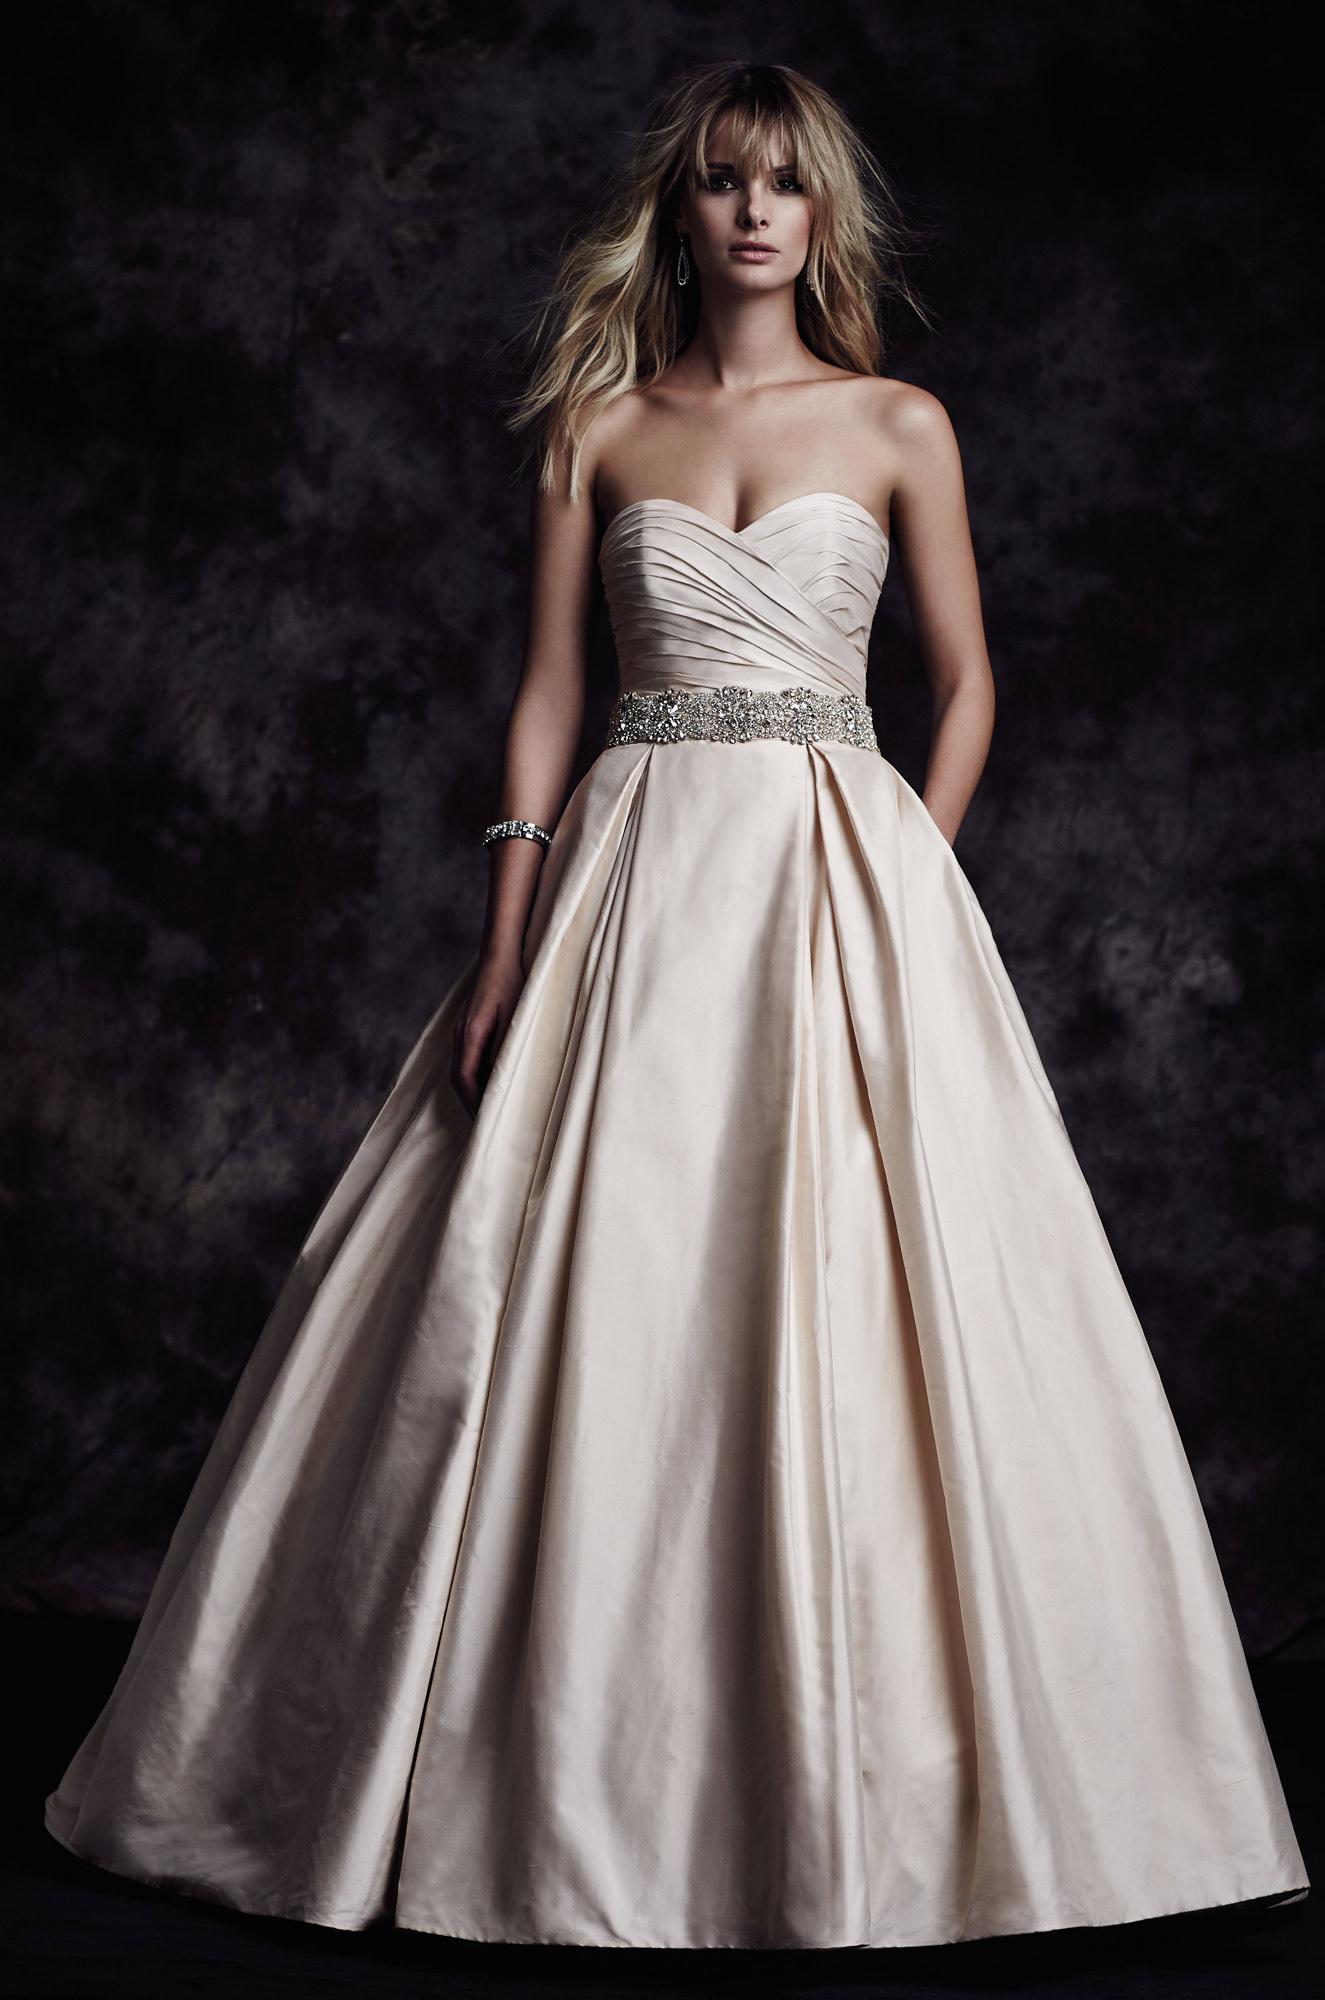 Sweetheart Ball Gown Wedding Dress - Style #4606 | Paloma Blanca